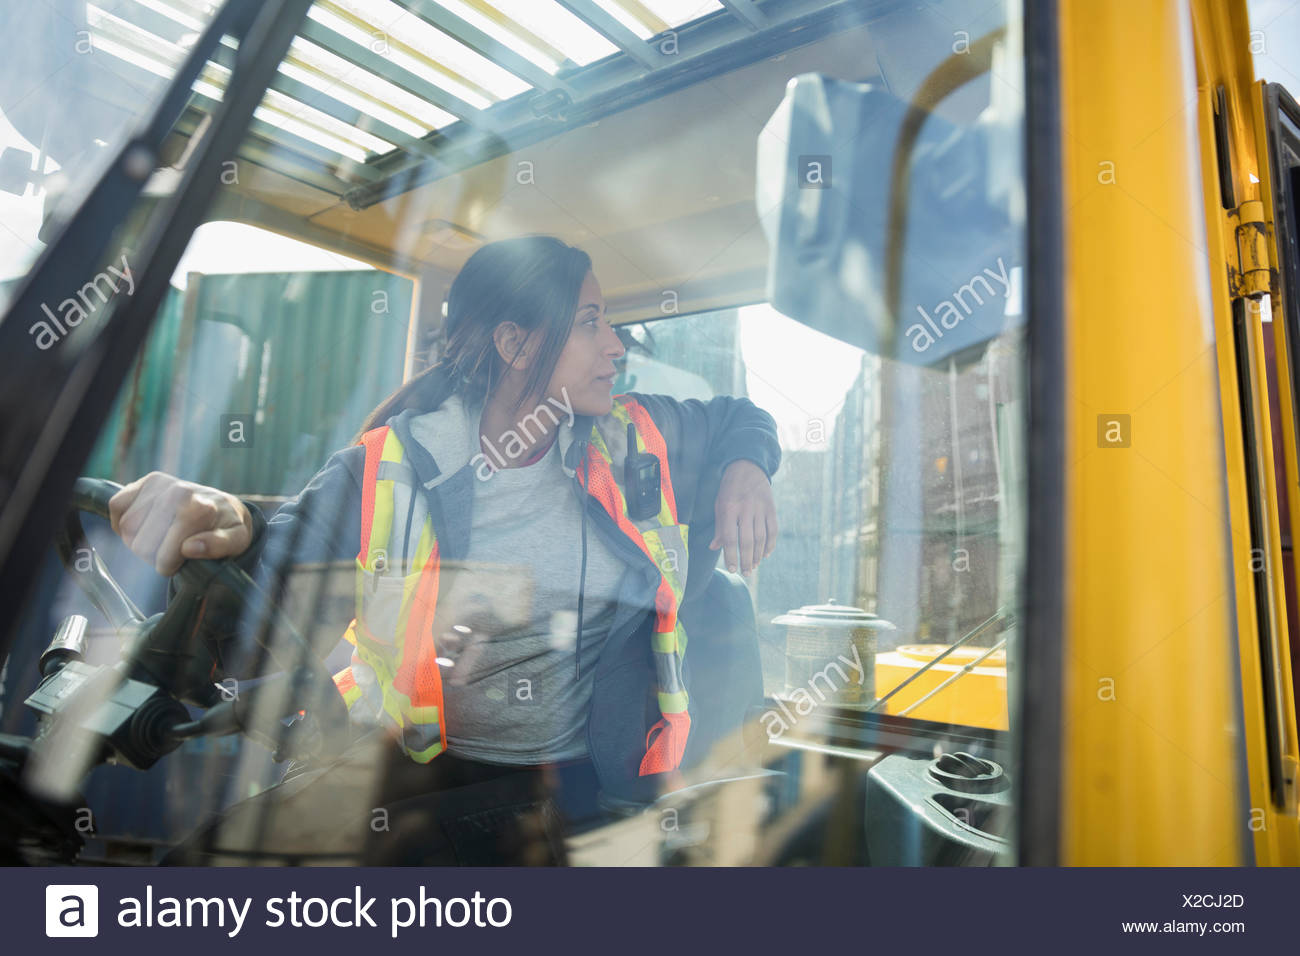 Female forklift driver inside forklift in industrial container yard Stock Photo